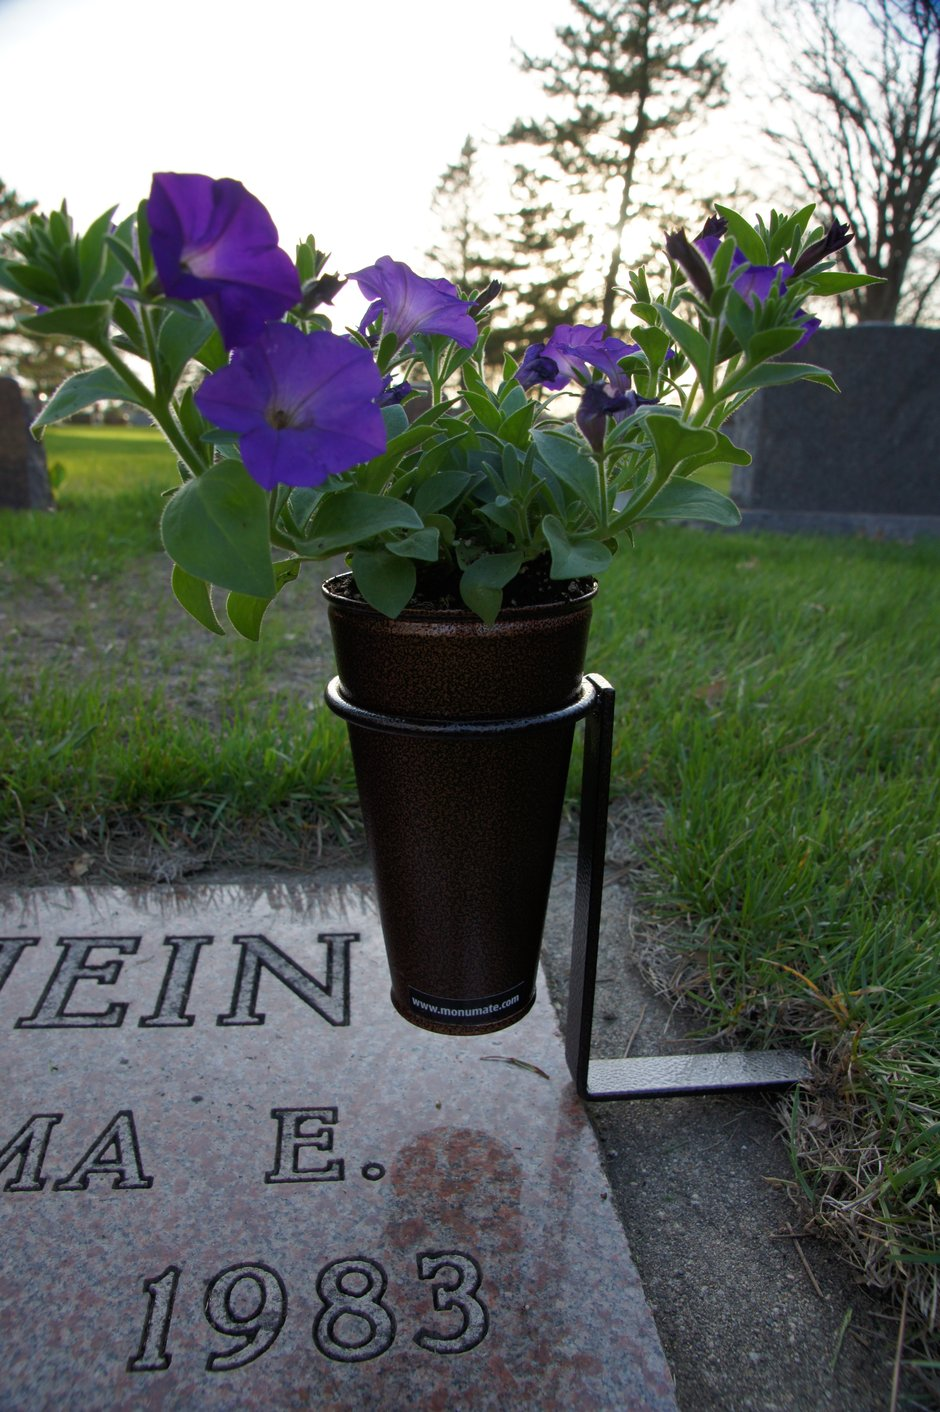 A loving memorial to those you love.